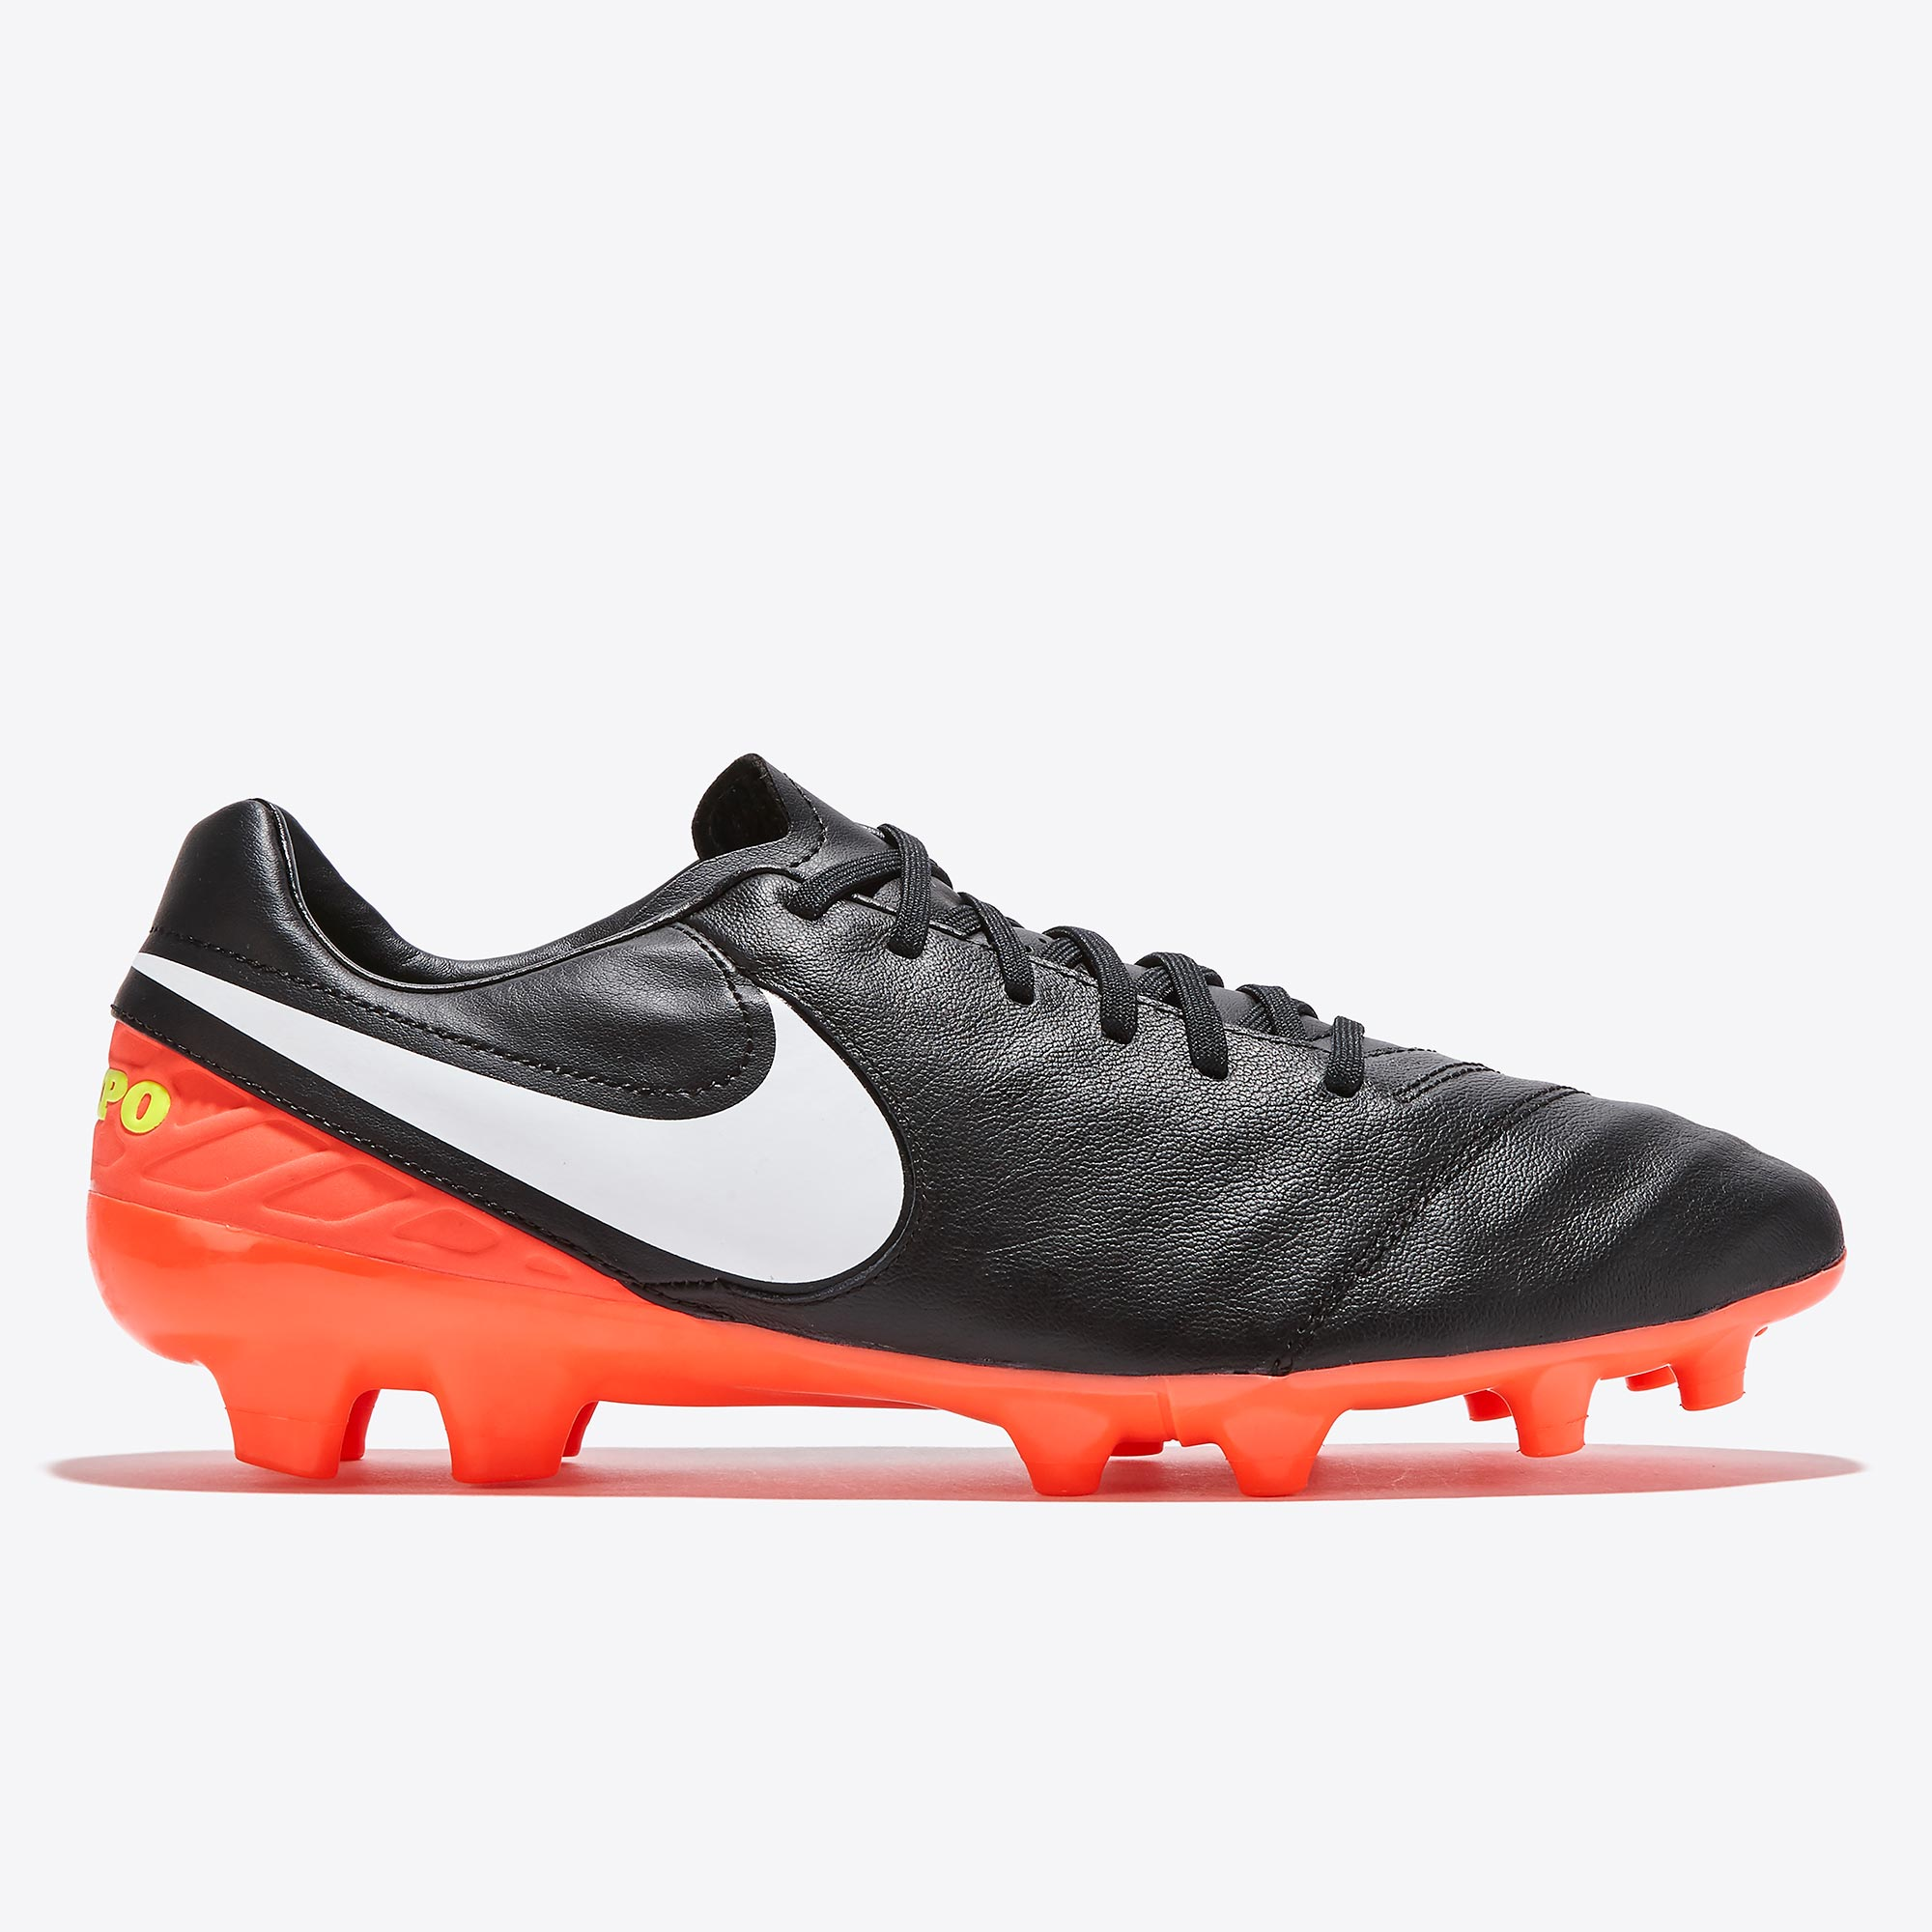 buy nike tiempo rugby boots legend 6 vi older models. Black Bedroom Furniture Sets. Home Design Ideas